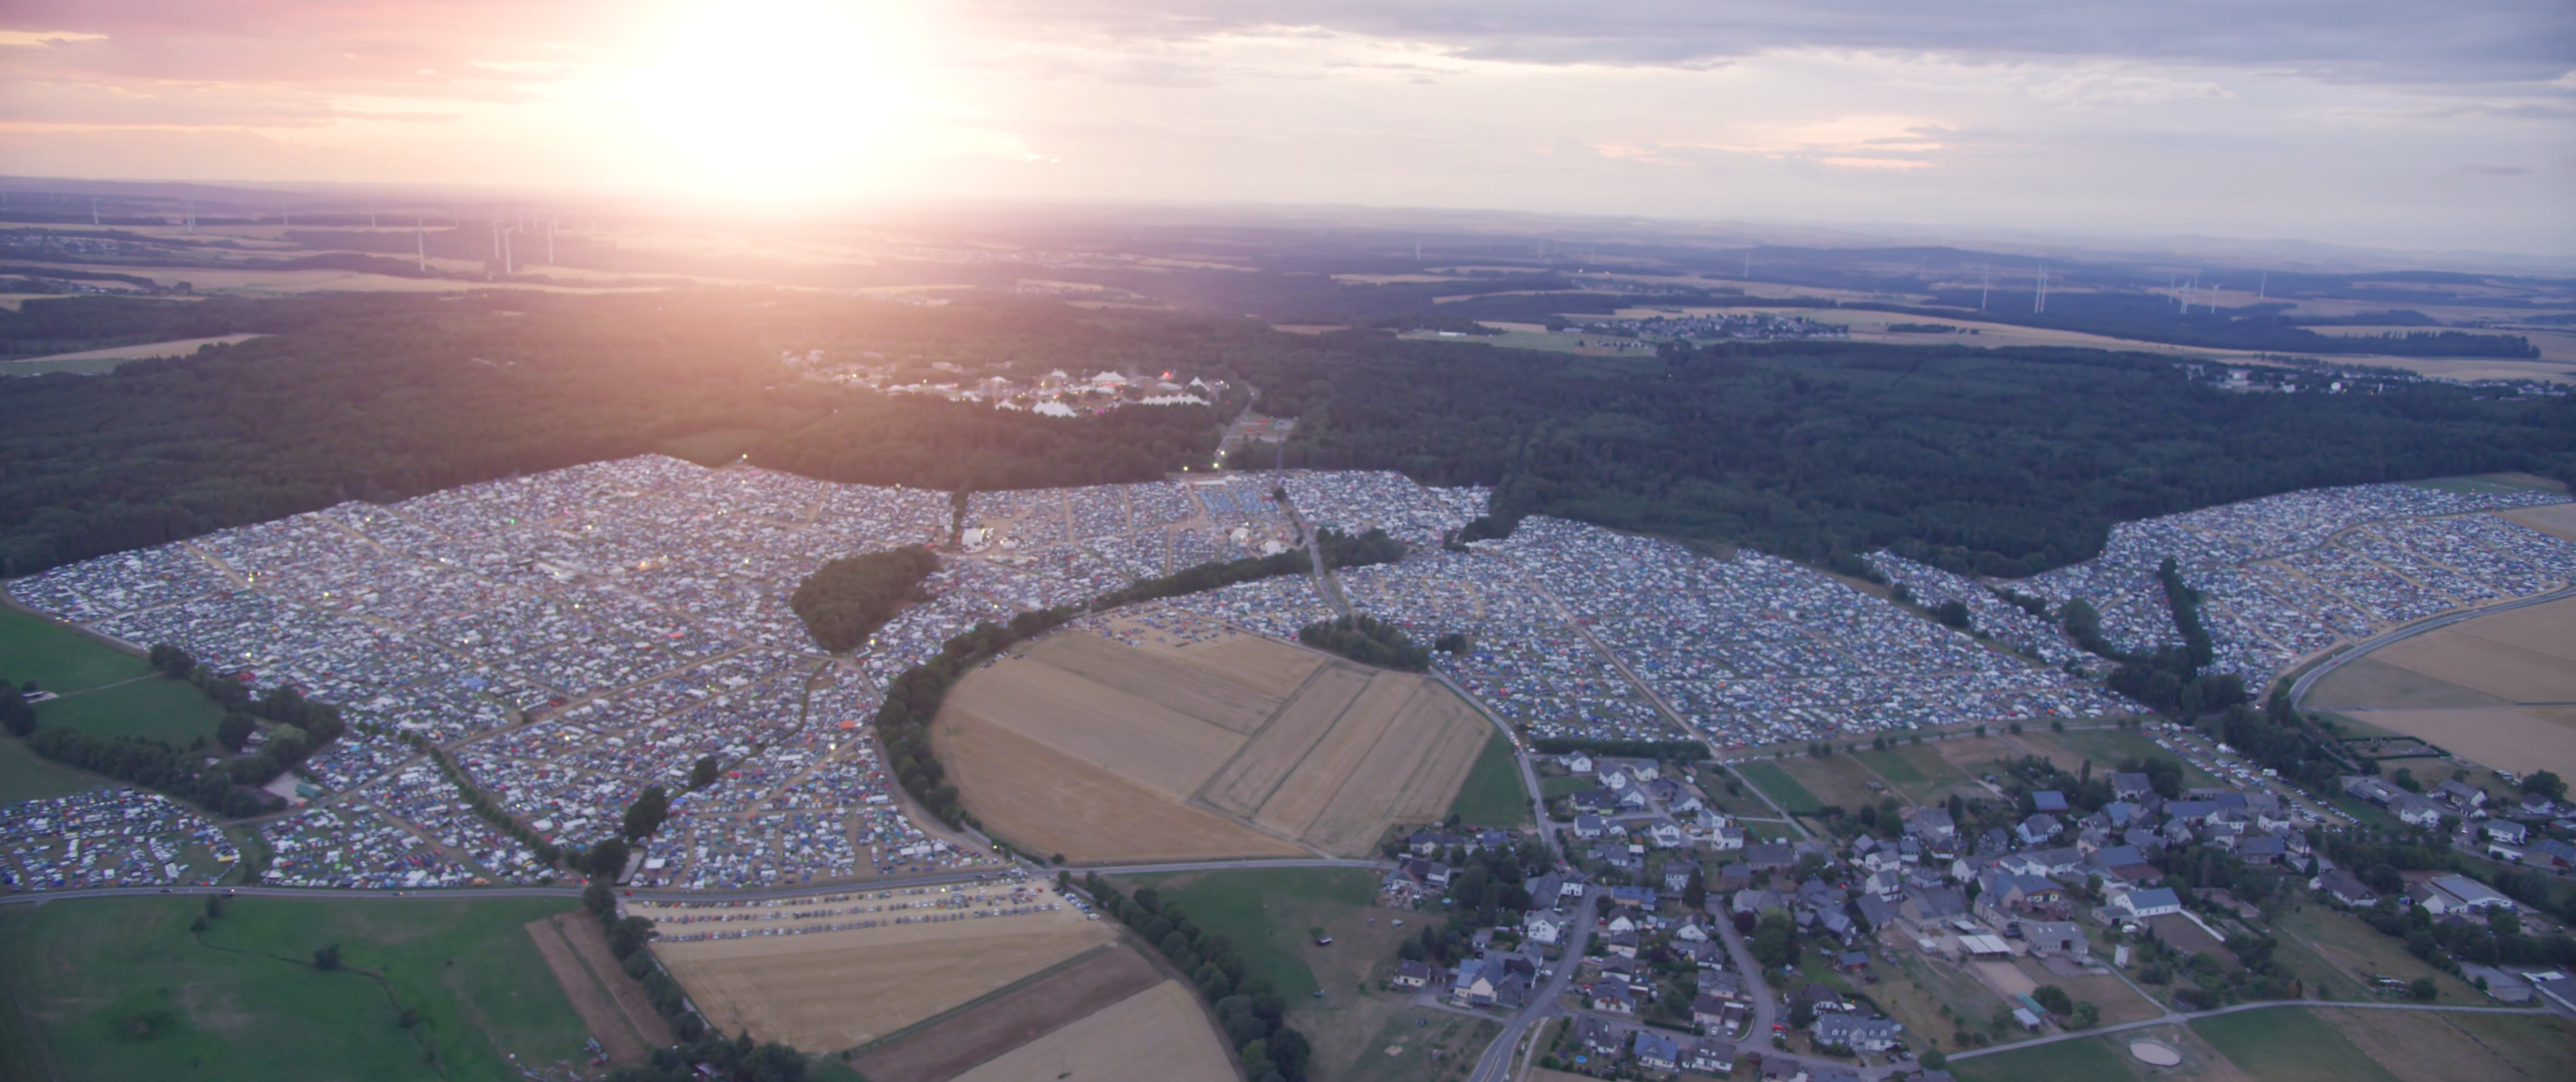 camping_festival